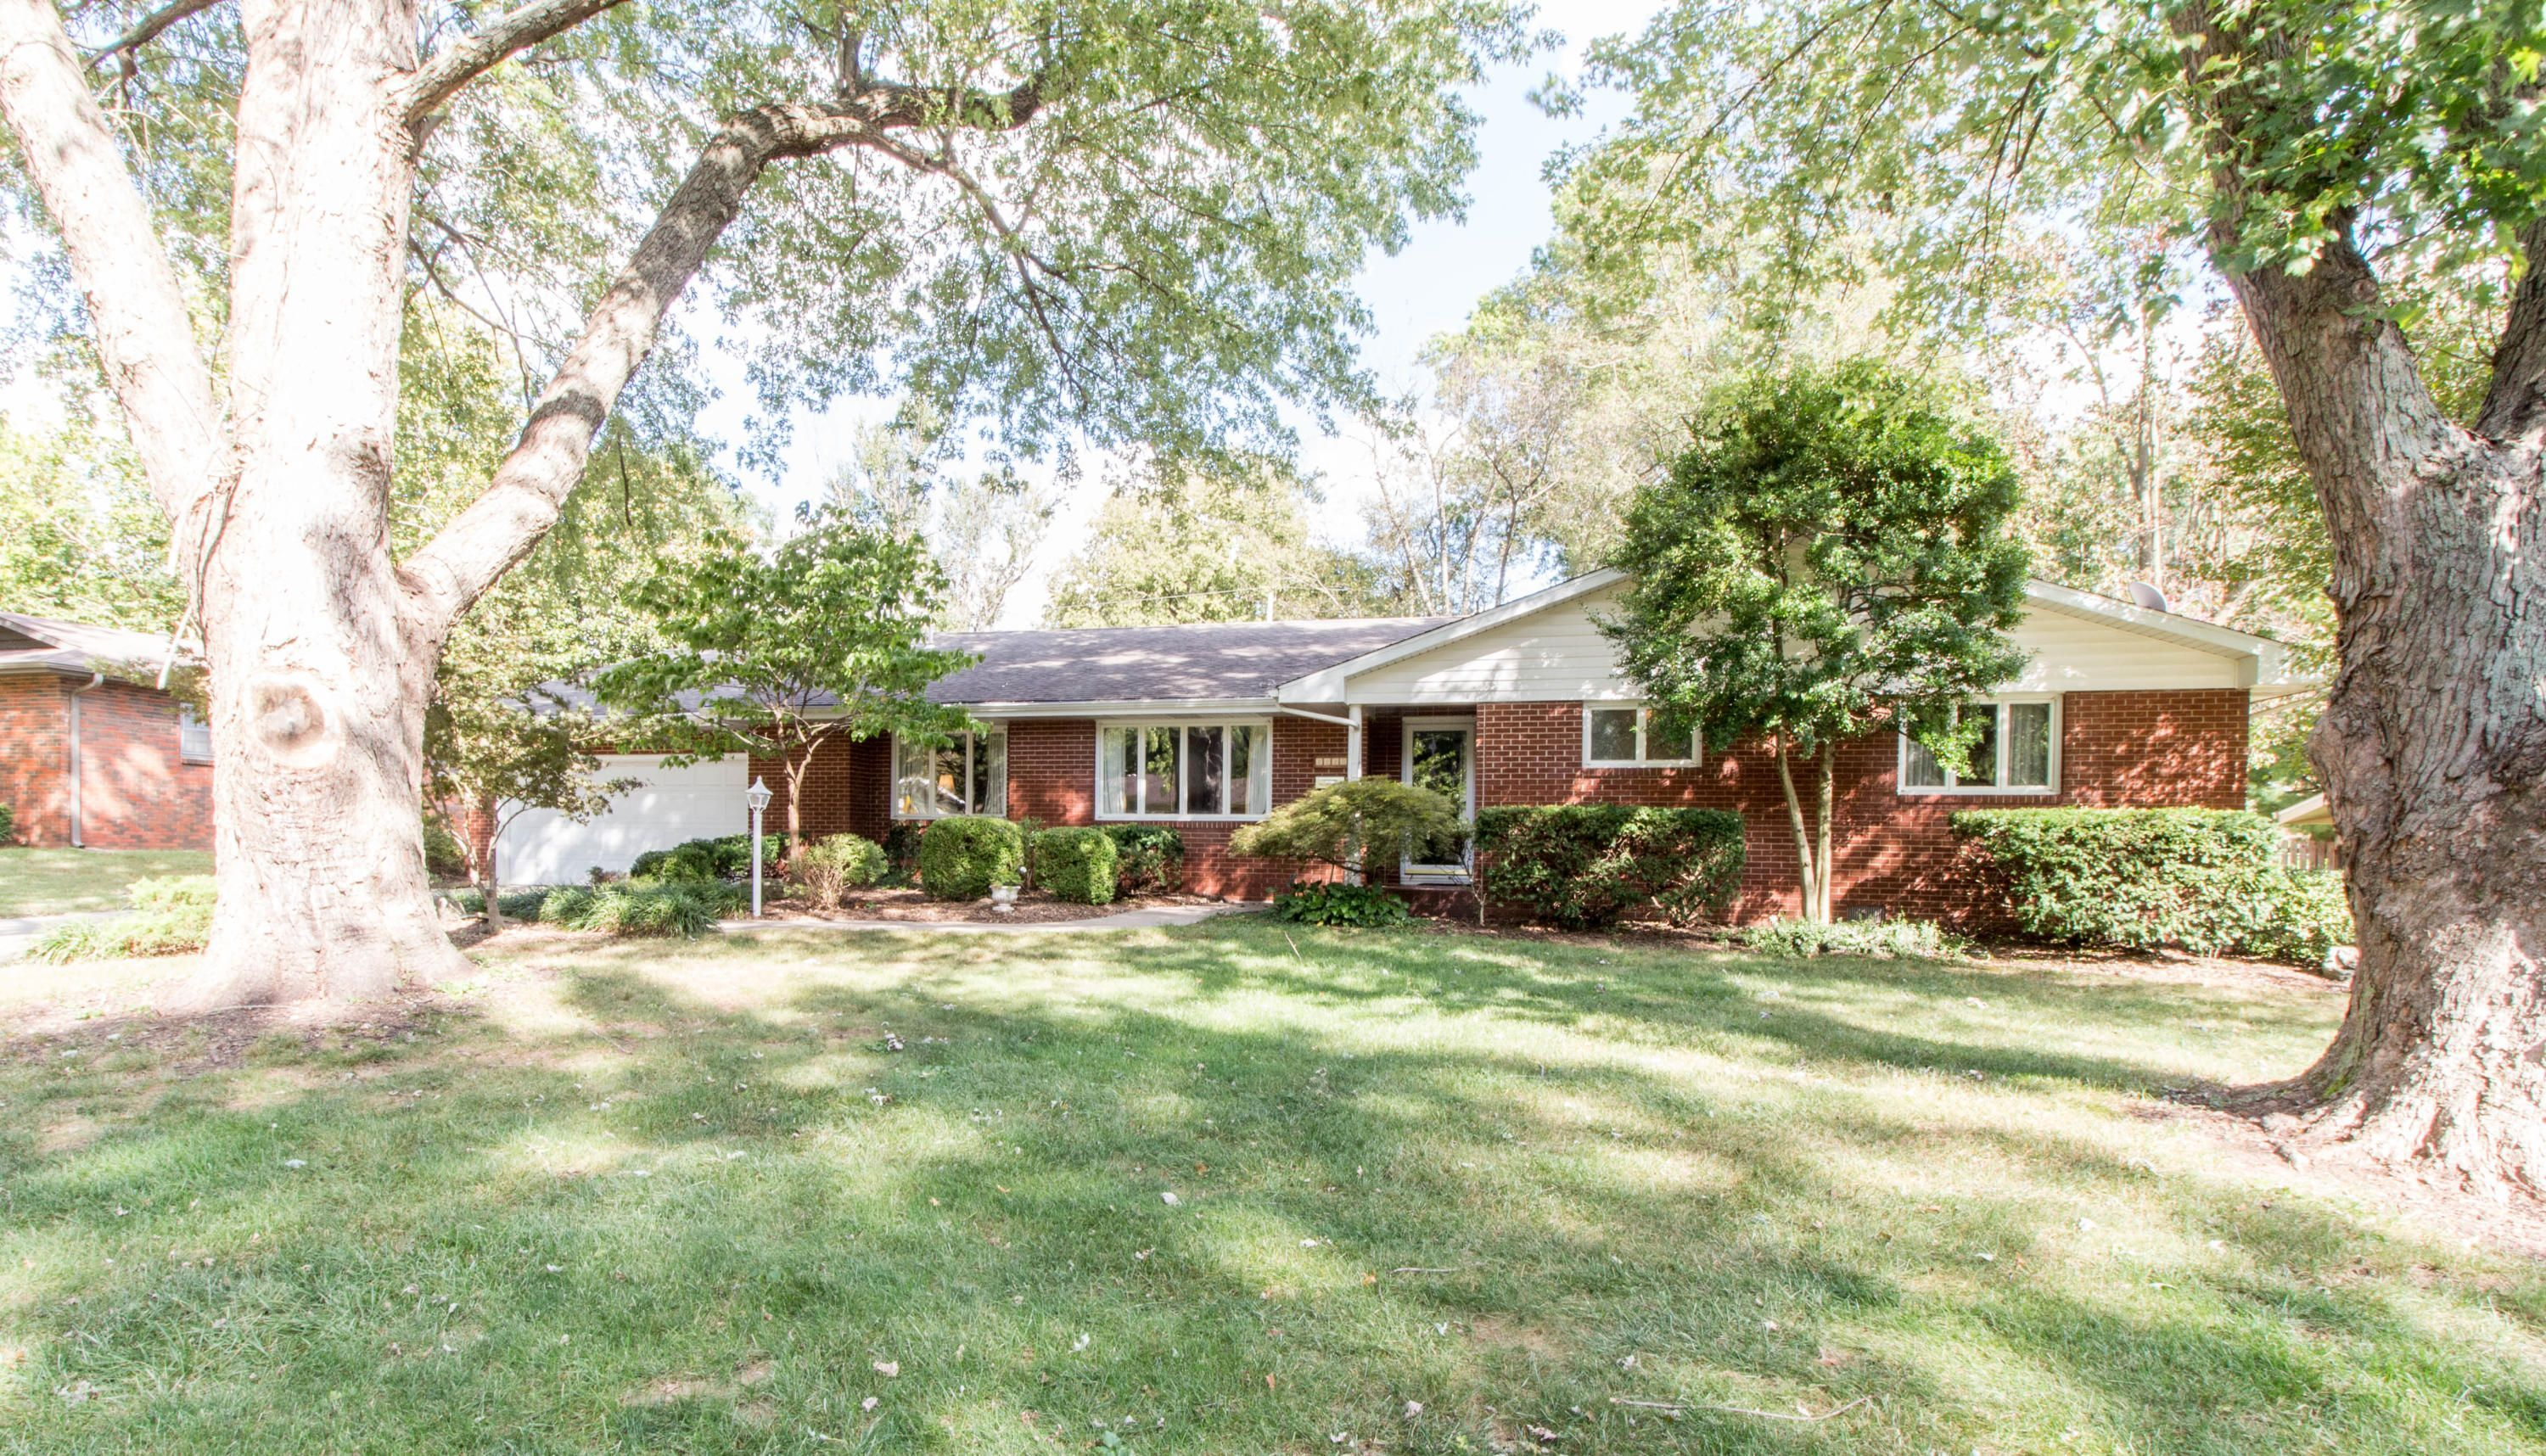 Just Listed 2220 South Catalina Avenue Springfield Mo 65804 3 Beds 2 Baths 2 243 Sq Ft 225 000 S House Prices Real Estate Services Real Estate